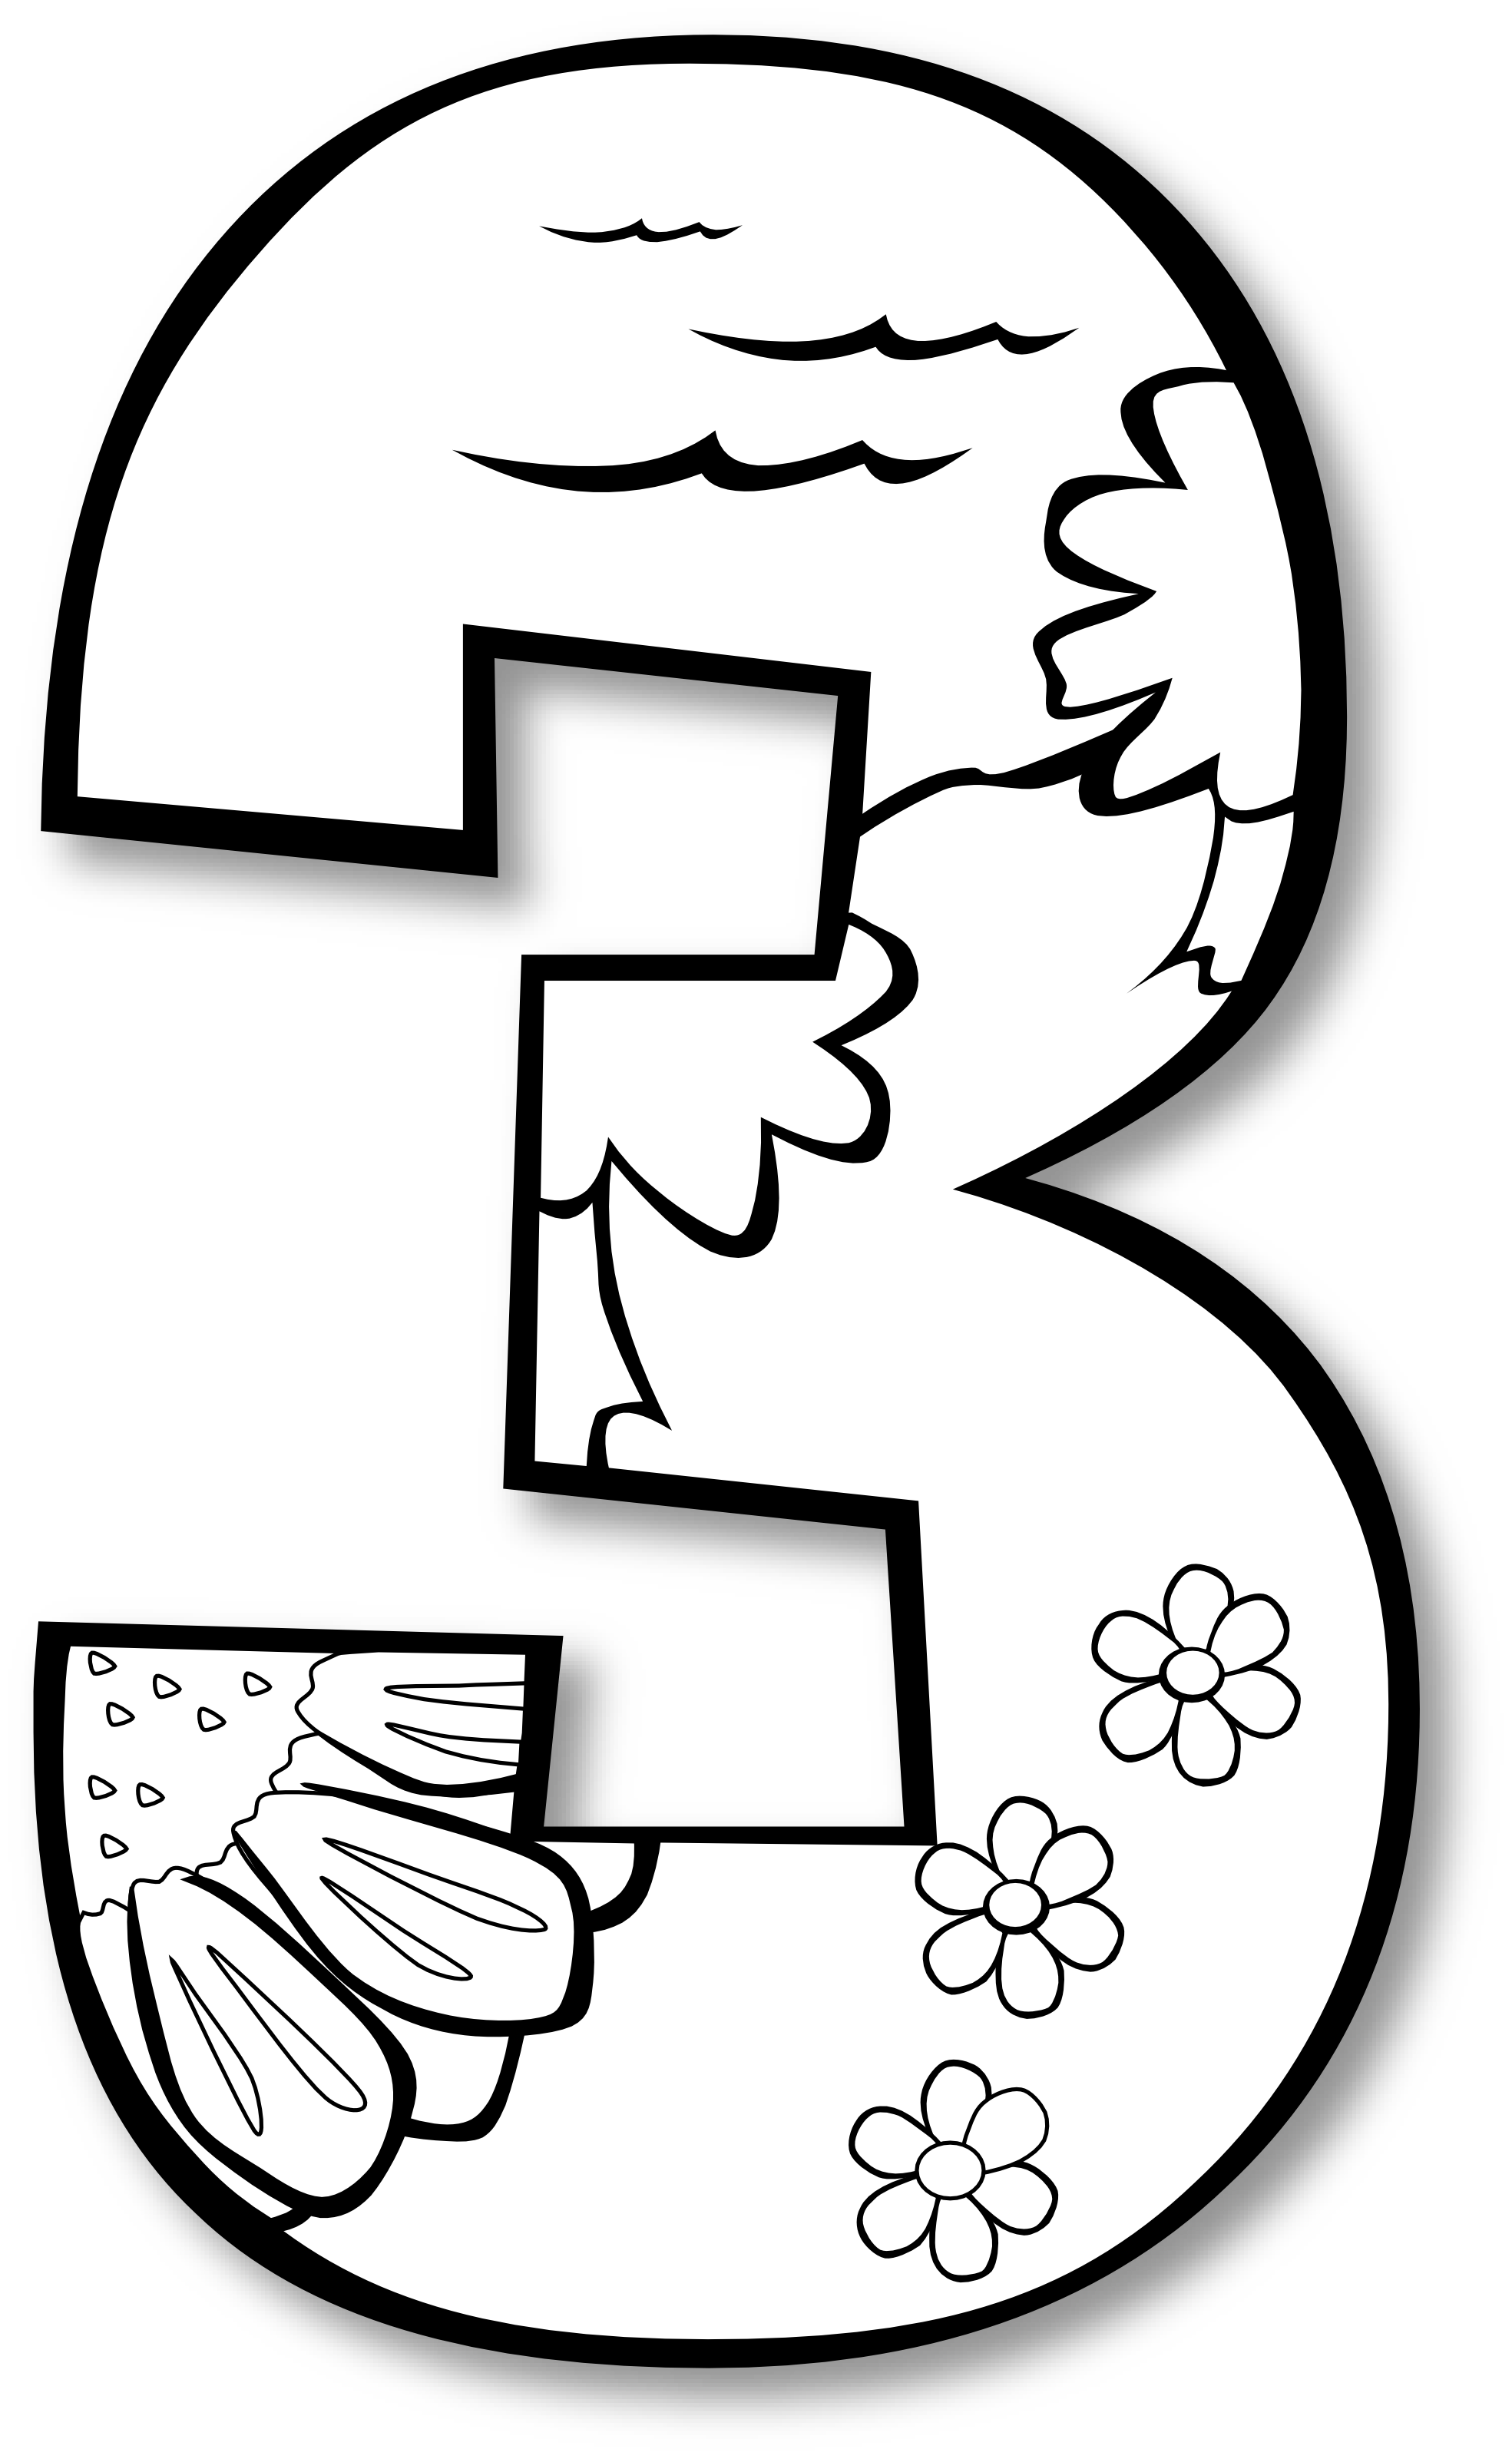 3 clipart number one. Art ge black white